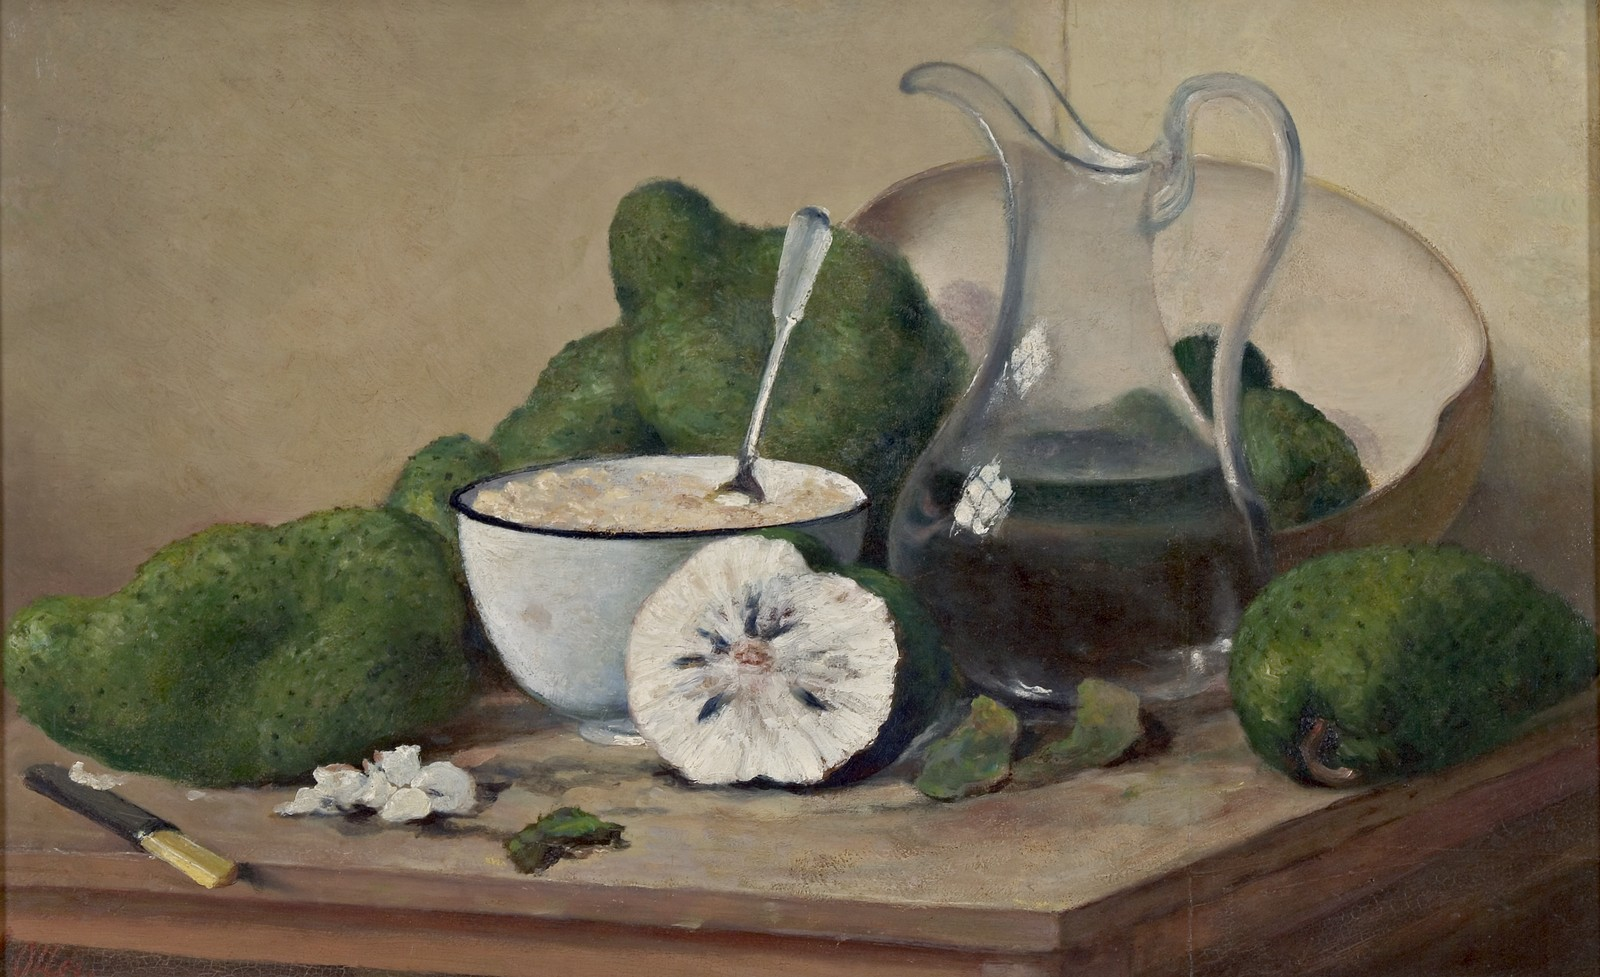 Still Life with Sour sops